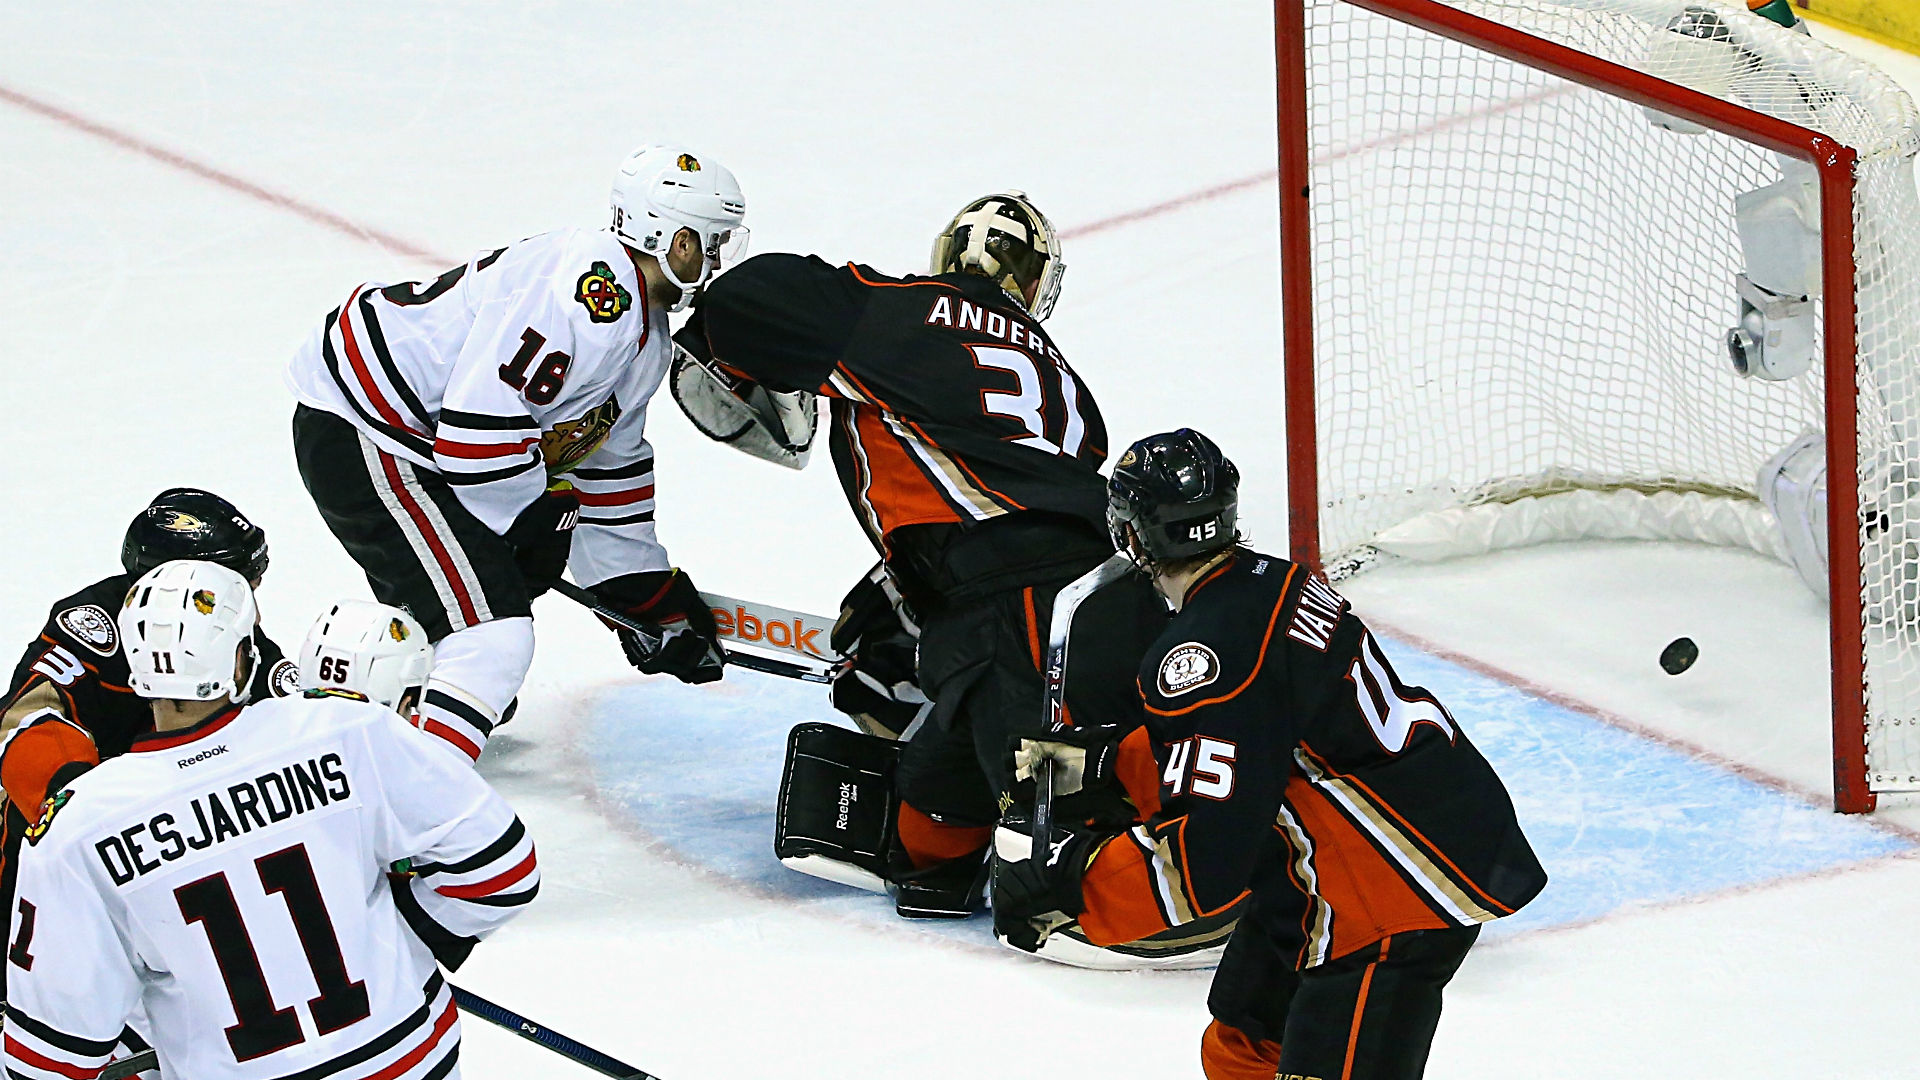 Ducks vs. Blackhawks Game 3 — Chicago a short favorite to advance